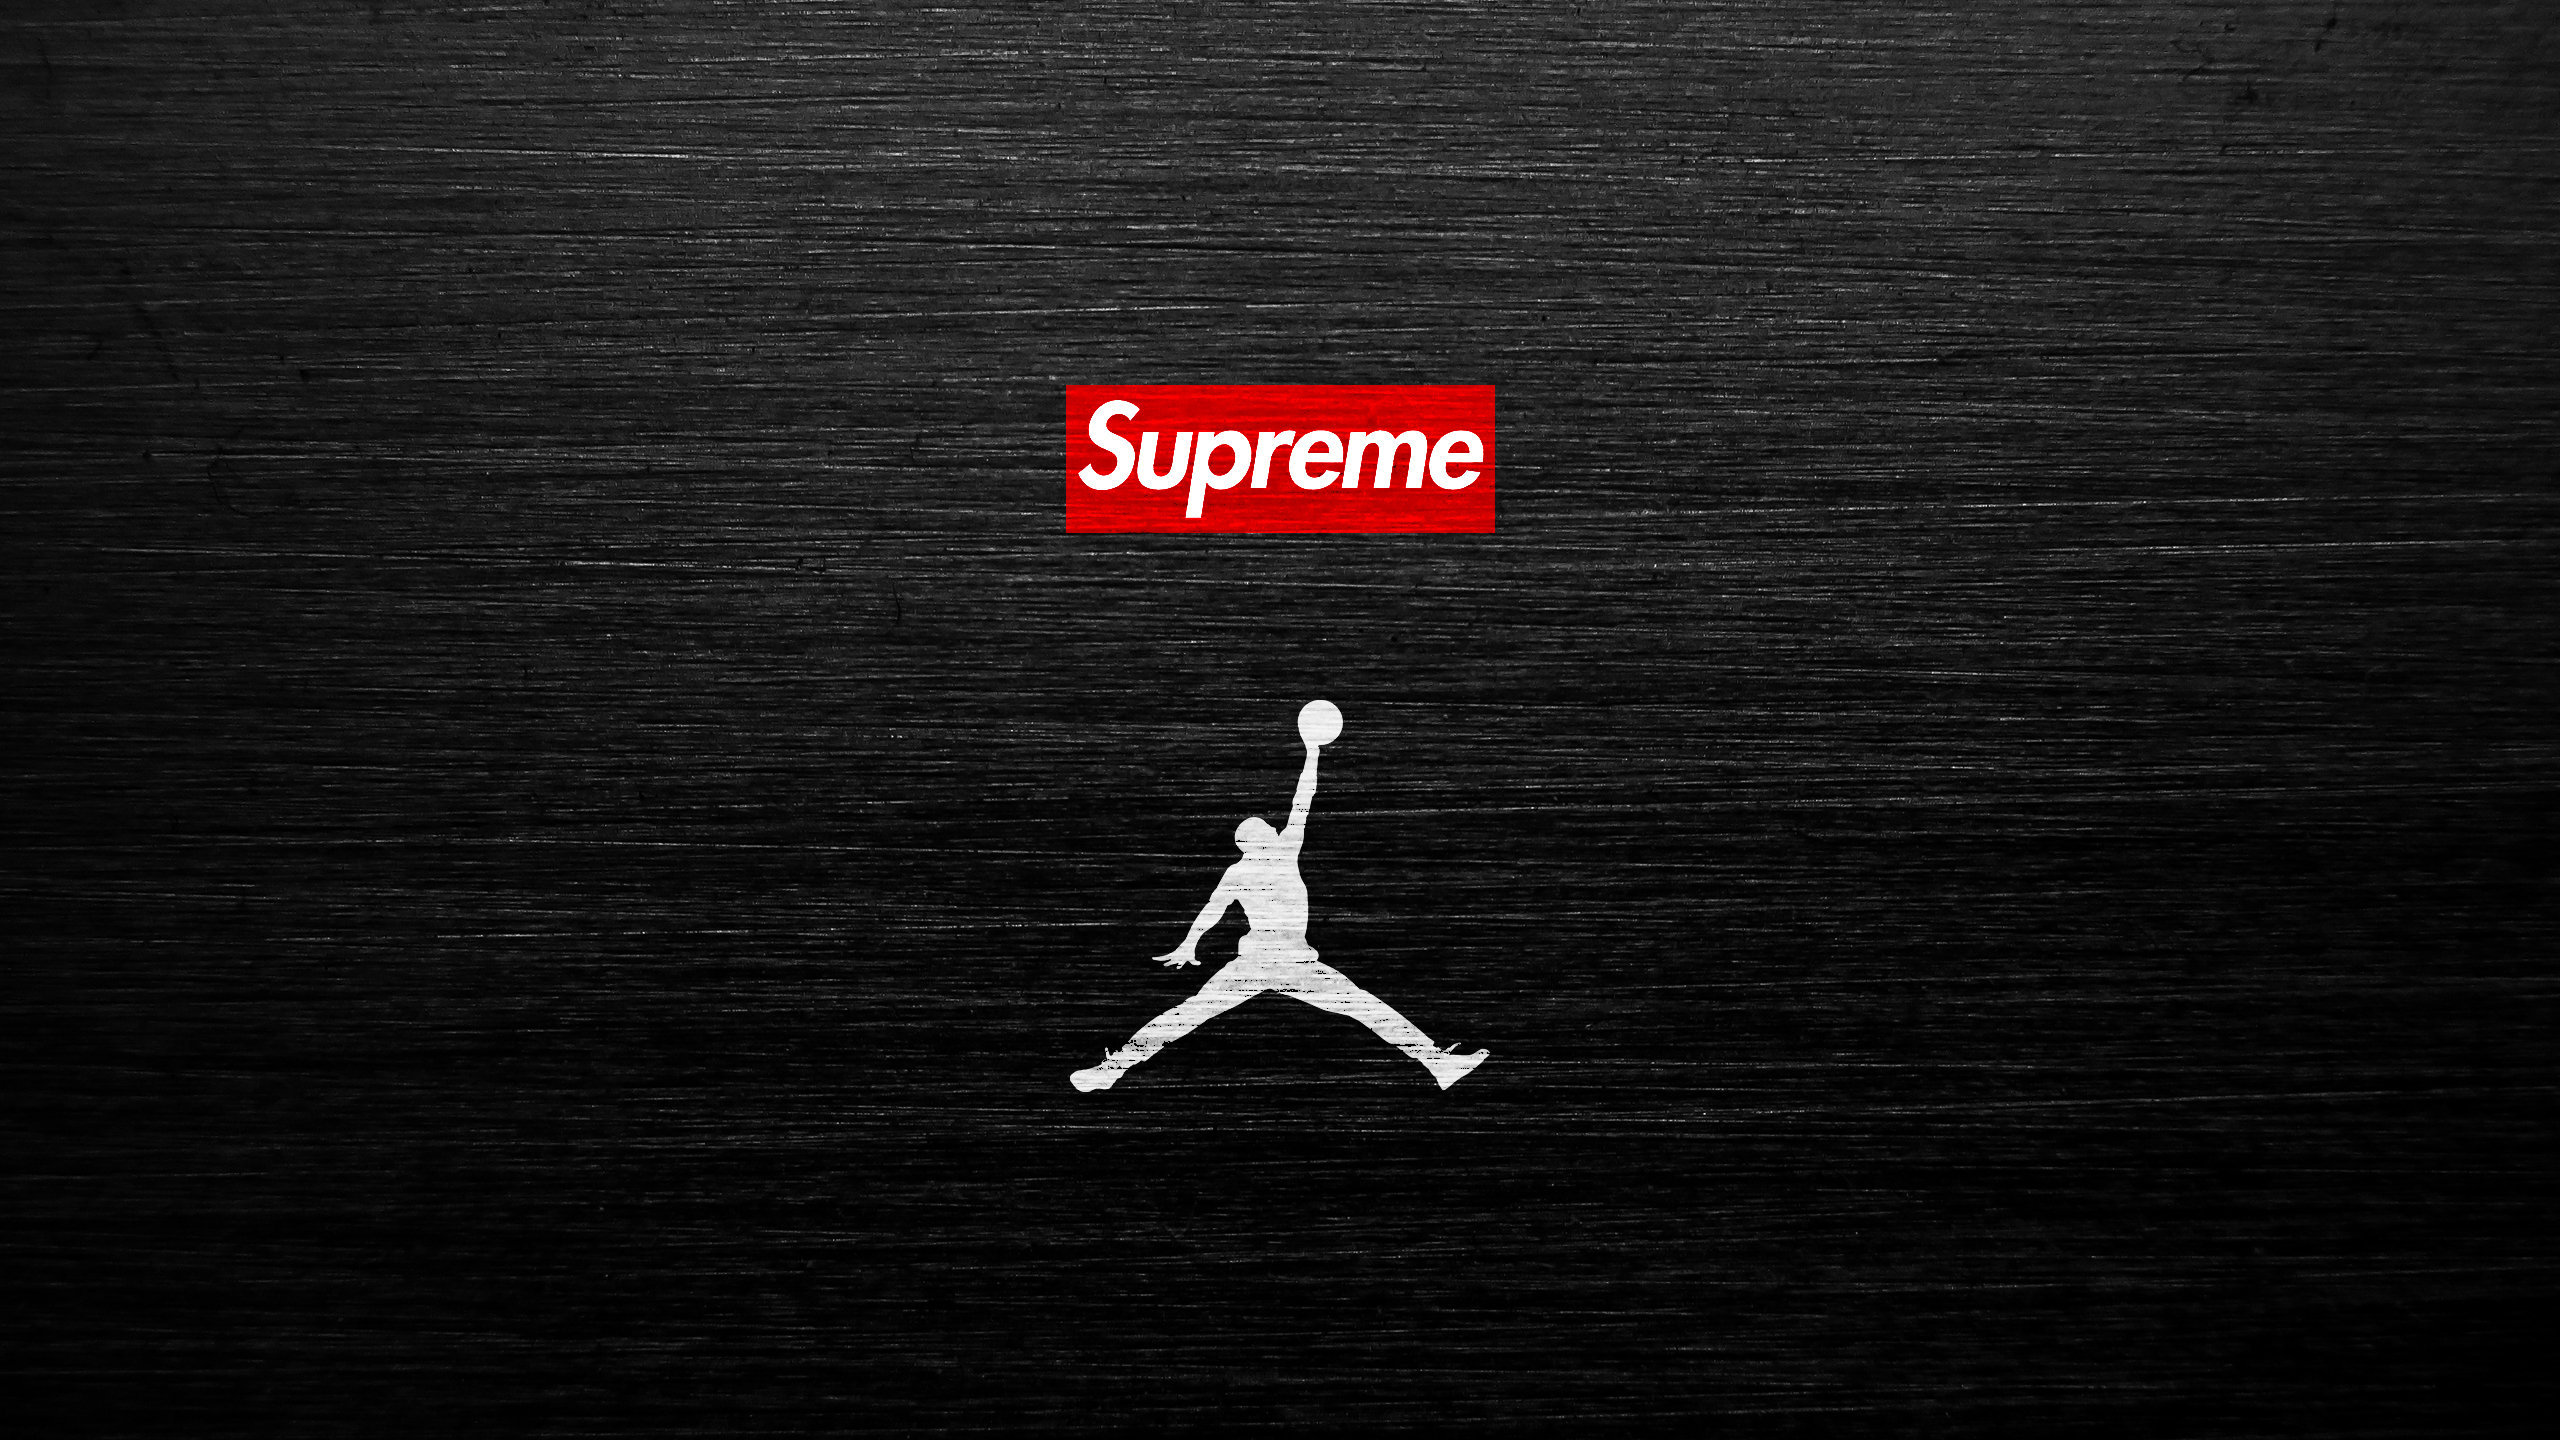 Download The Air Jordan Supreme Wallpaper Below For